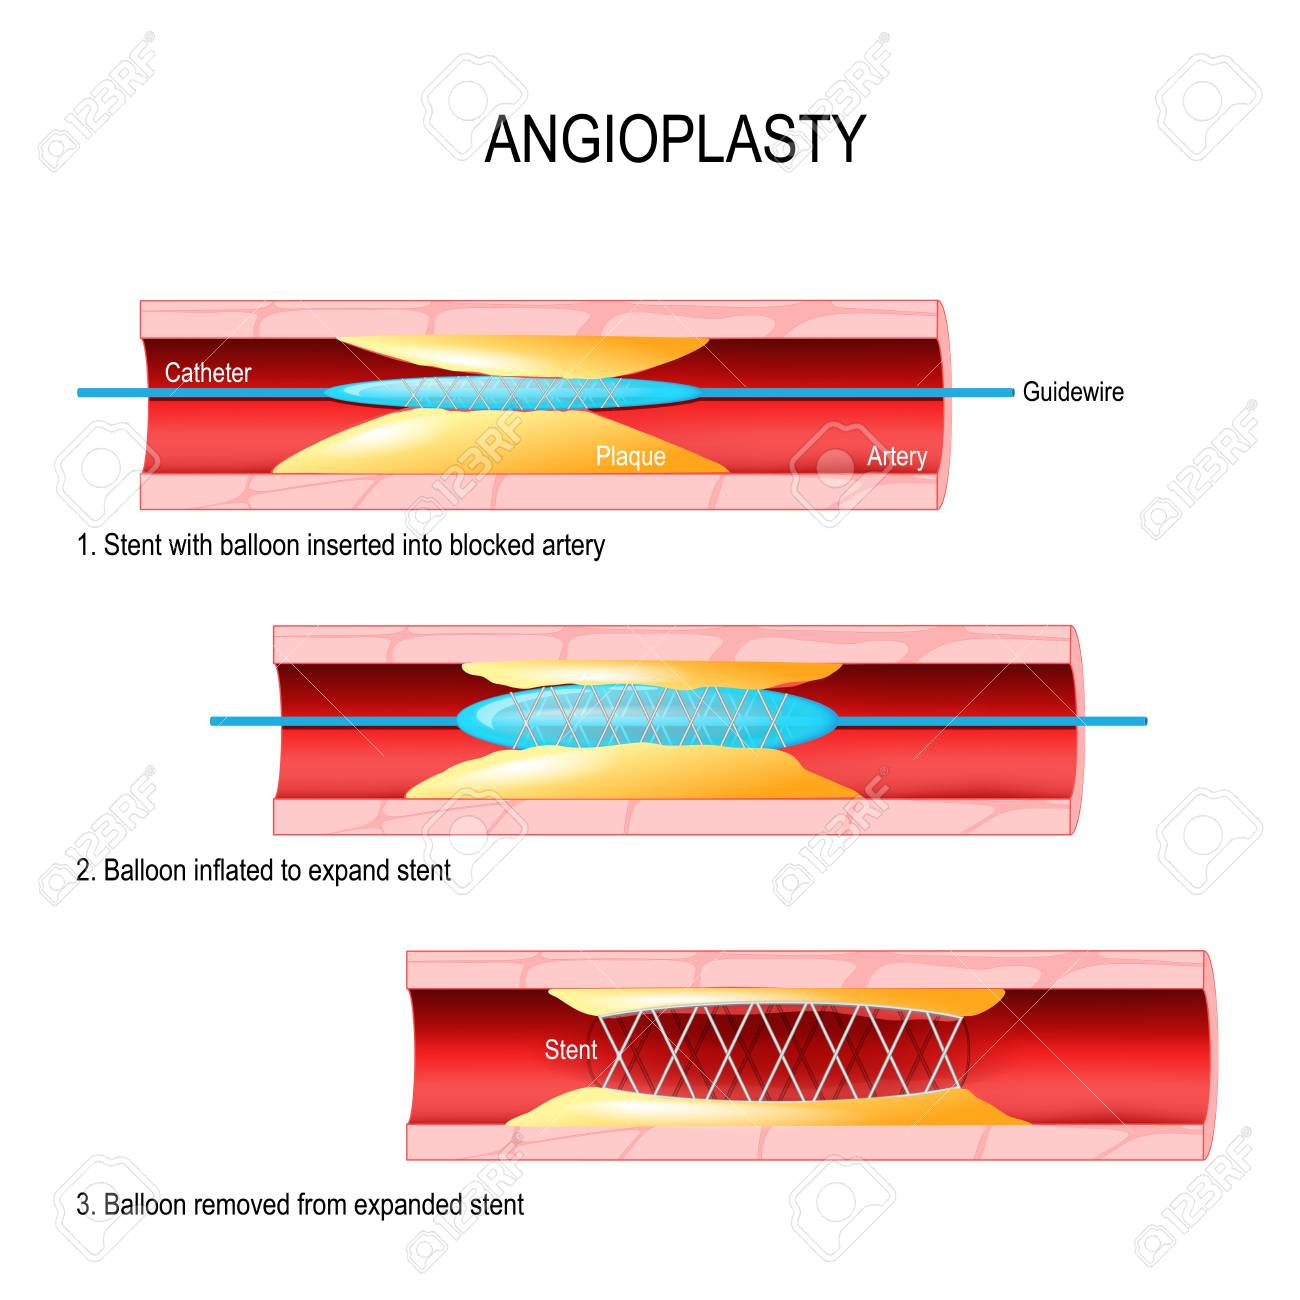 Angioplasty. Stent Implantation. Deflated balloon catheter inserted into a coronary artery narrowed by plaque. the balloon is inflated, compressing the plaque against the artery wall. Stents - tubes made of metal mesh. The stent remains in the artery after the procedure to help keep the artery open. - 90514051